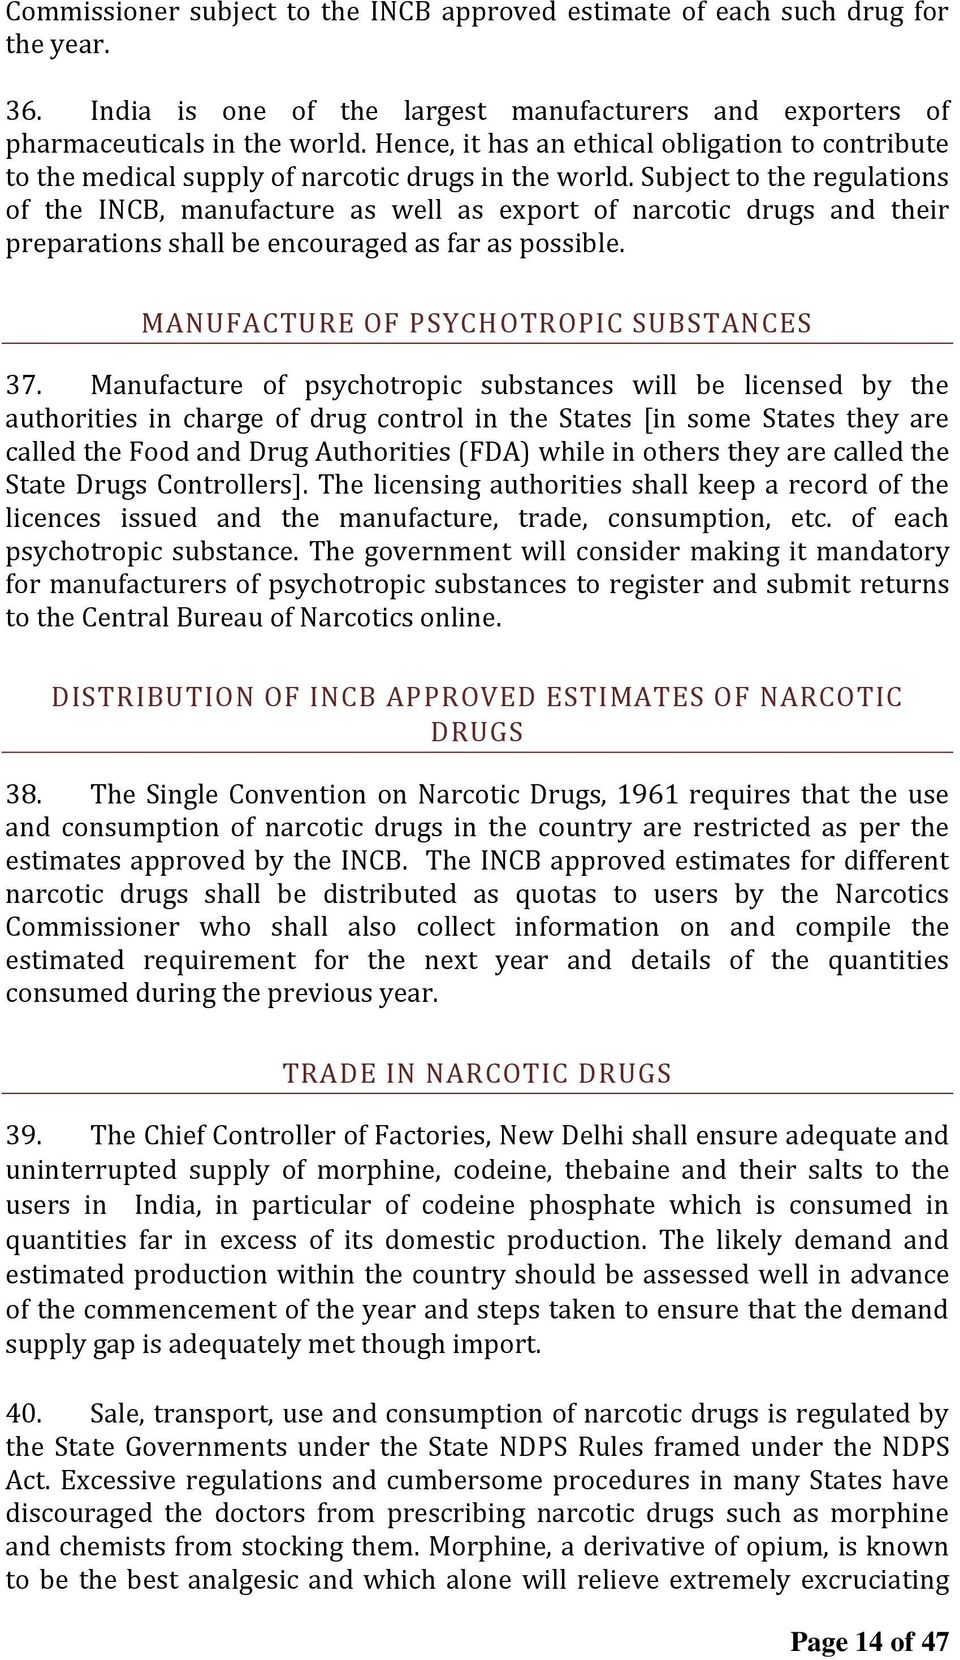 Subject to the regulations of the INCB, manufacture as well as export of narcotic drugs and their preparations shall be encouraged as far as possible. MANUFACTURE OF PSYCHOTROPIC SUBSTANCES 37.